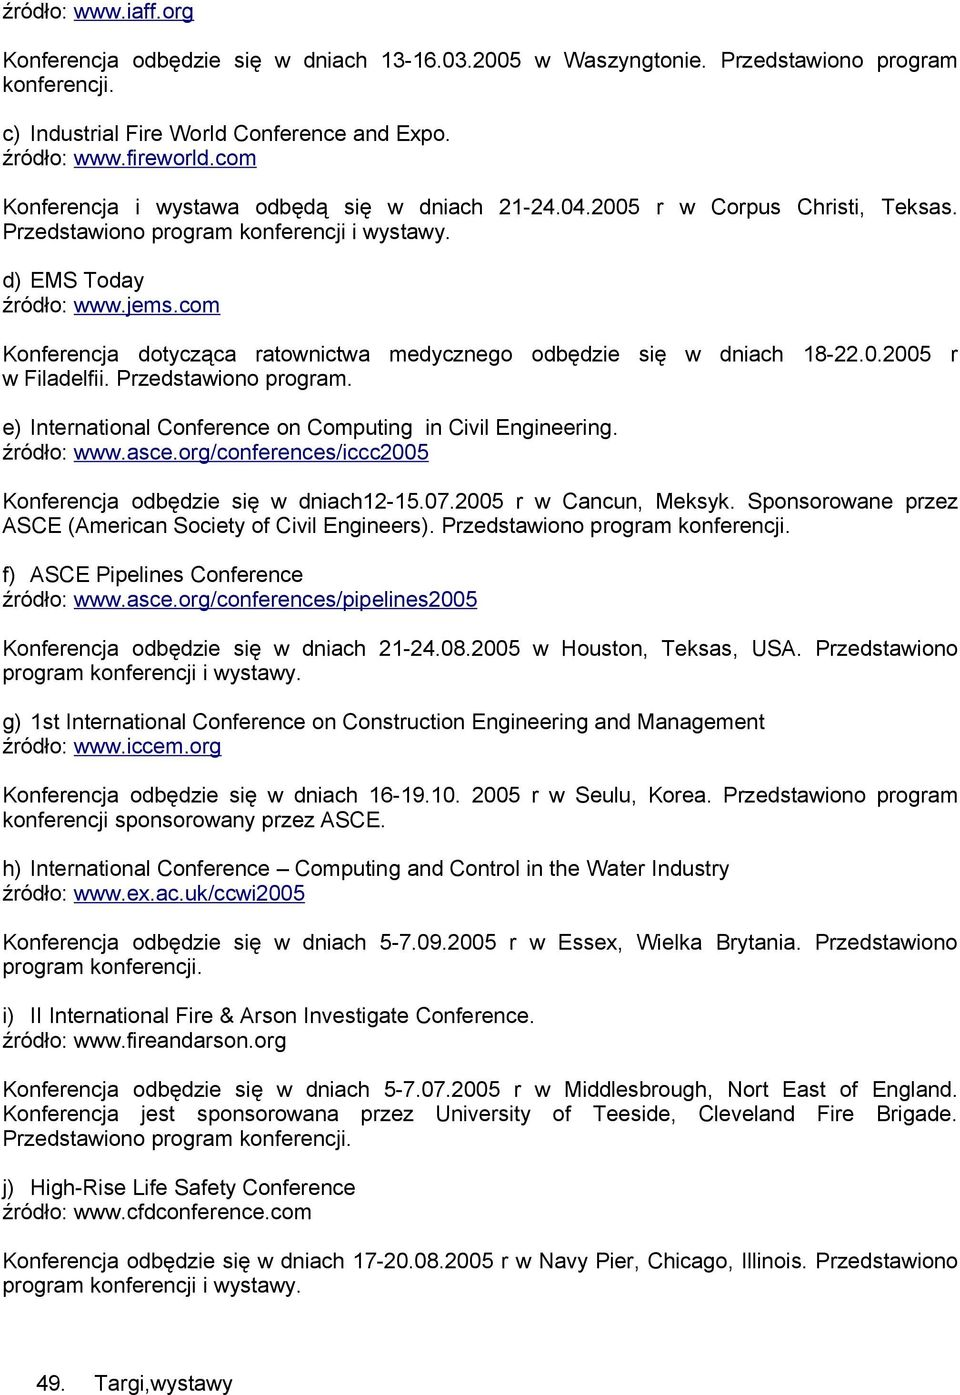 com Konferencja dotycząca ratownictwa medycznego odbędzie się w dniach 18-22.0.2005 r w Filadelfii. Przedstawiono program. e) International Conference on Computing in Civil Engineering. źródło: www.